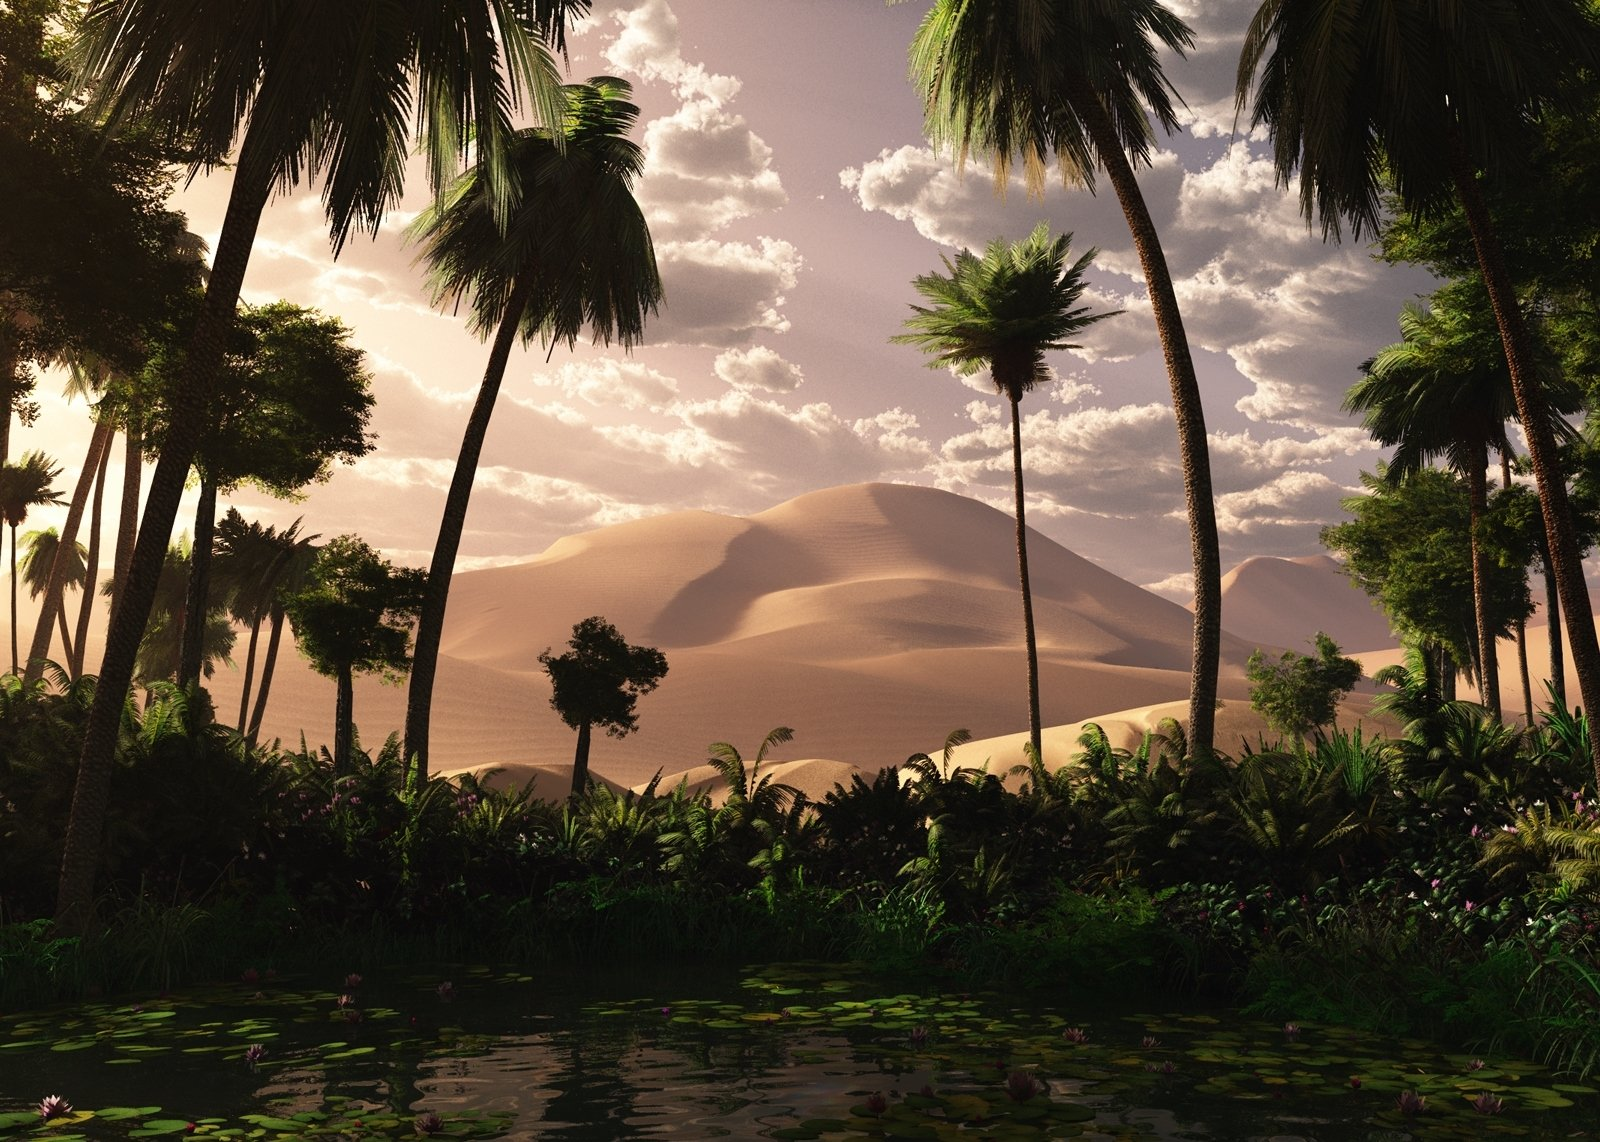 oasis landscape wallpapers archives - photo #18